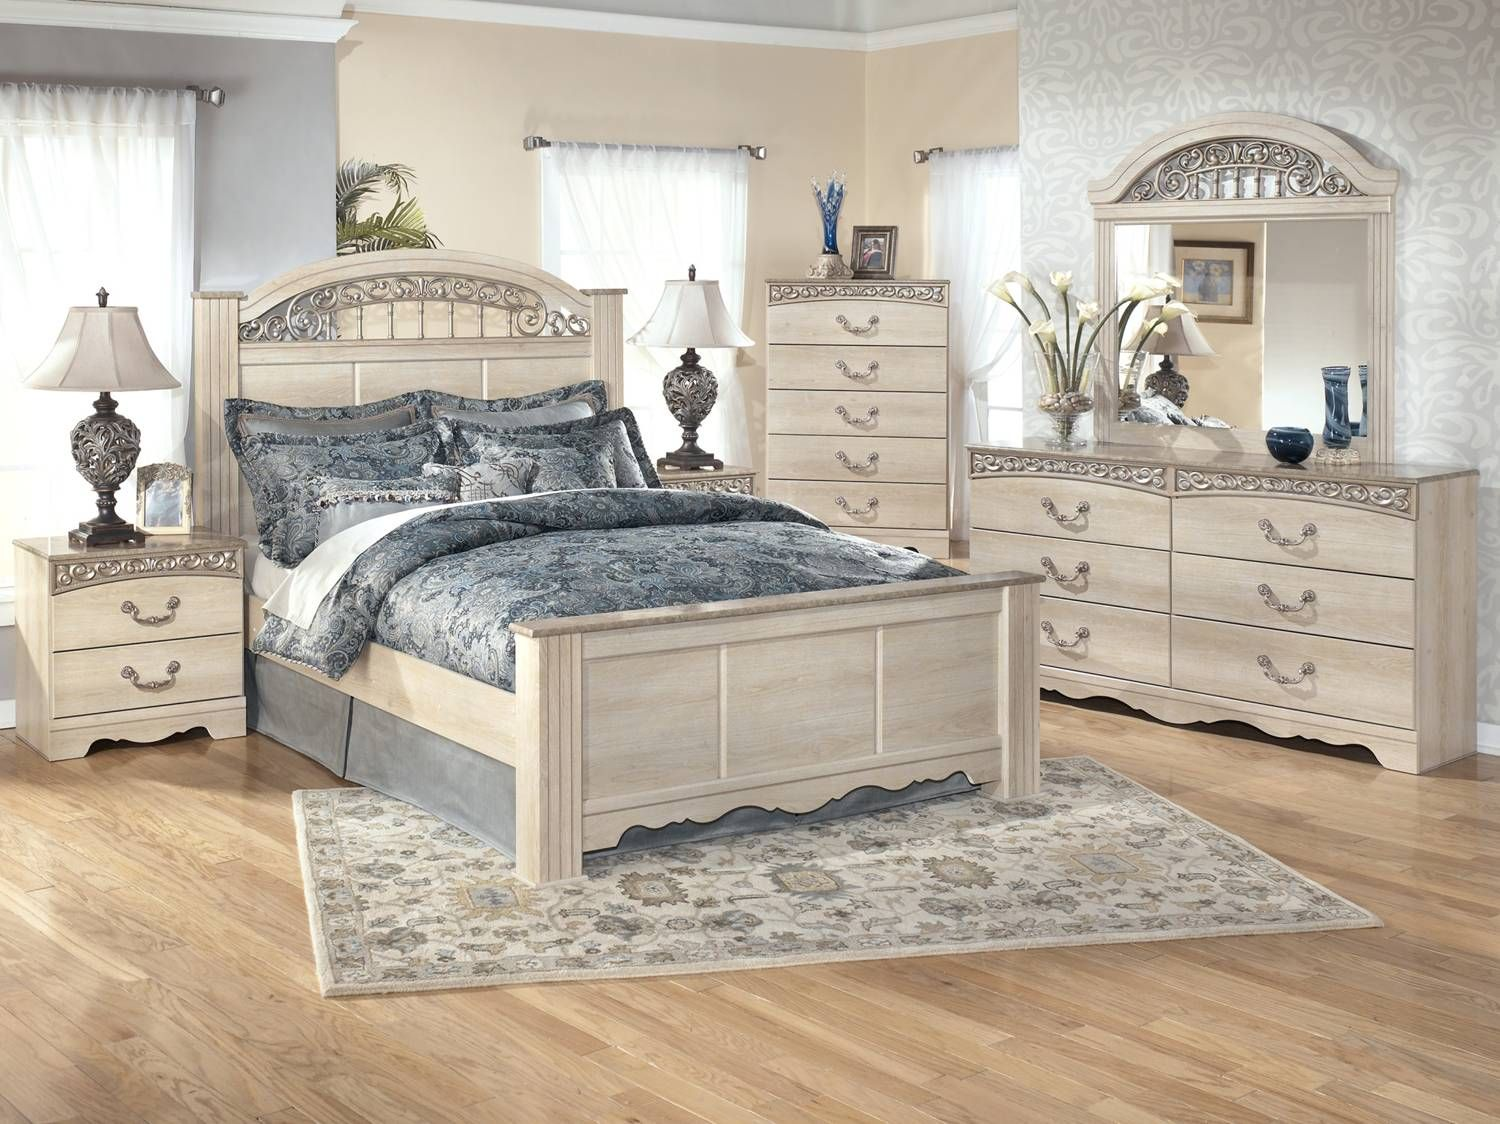 Bedroom Sets For Less Bedroom Decor Ideas Ashley Furniture Bedroom Bedroom Set Ashley Bedroom Furniture Sets